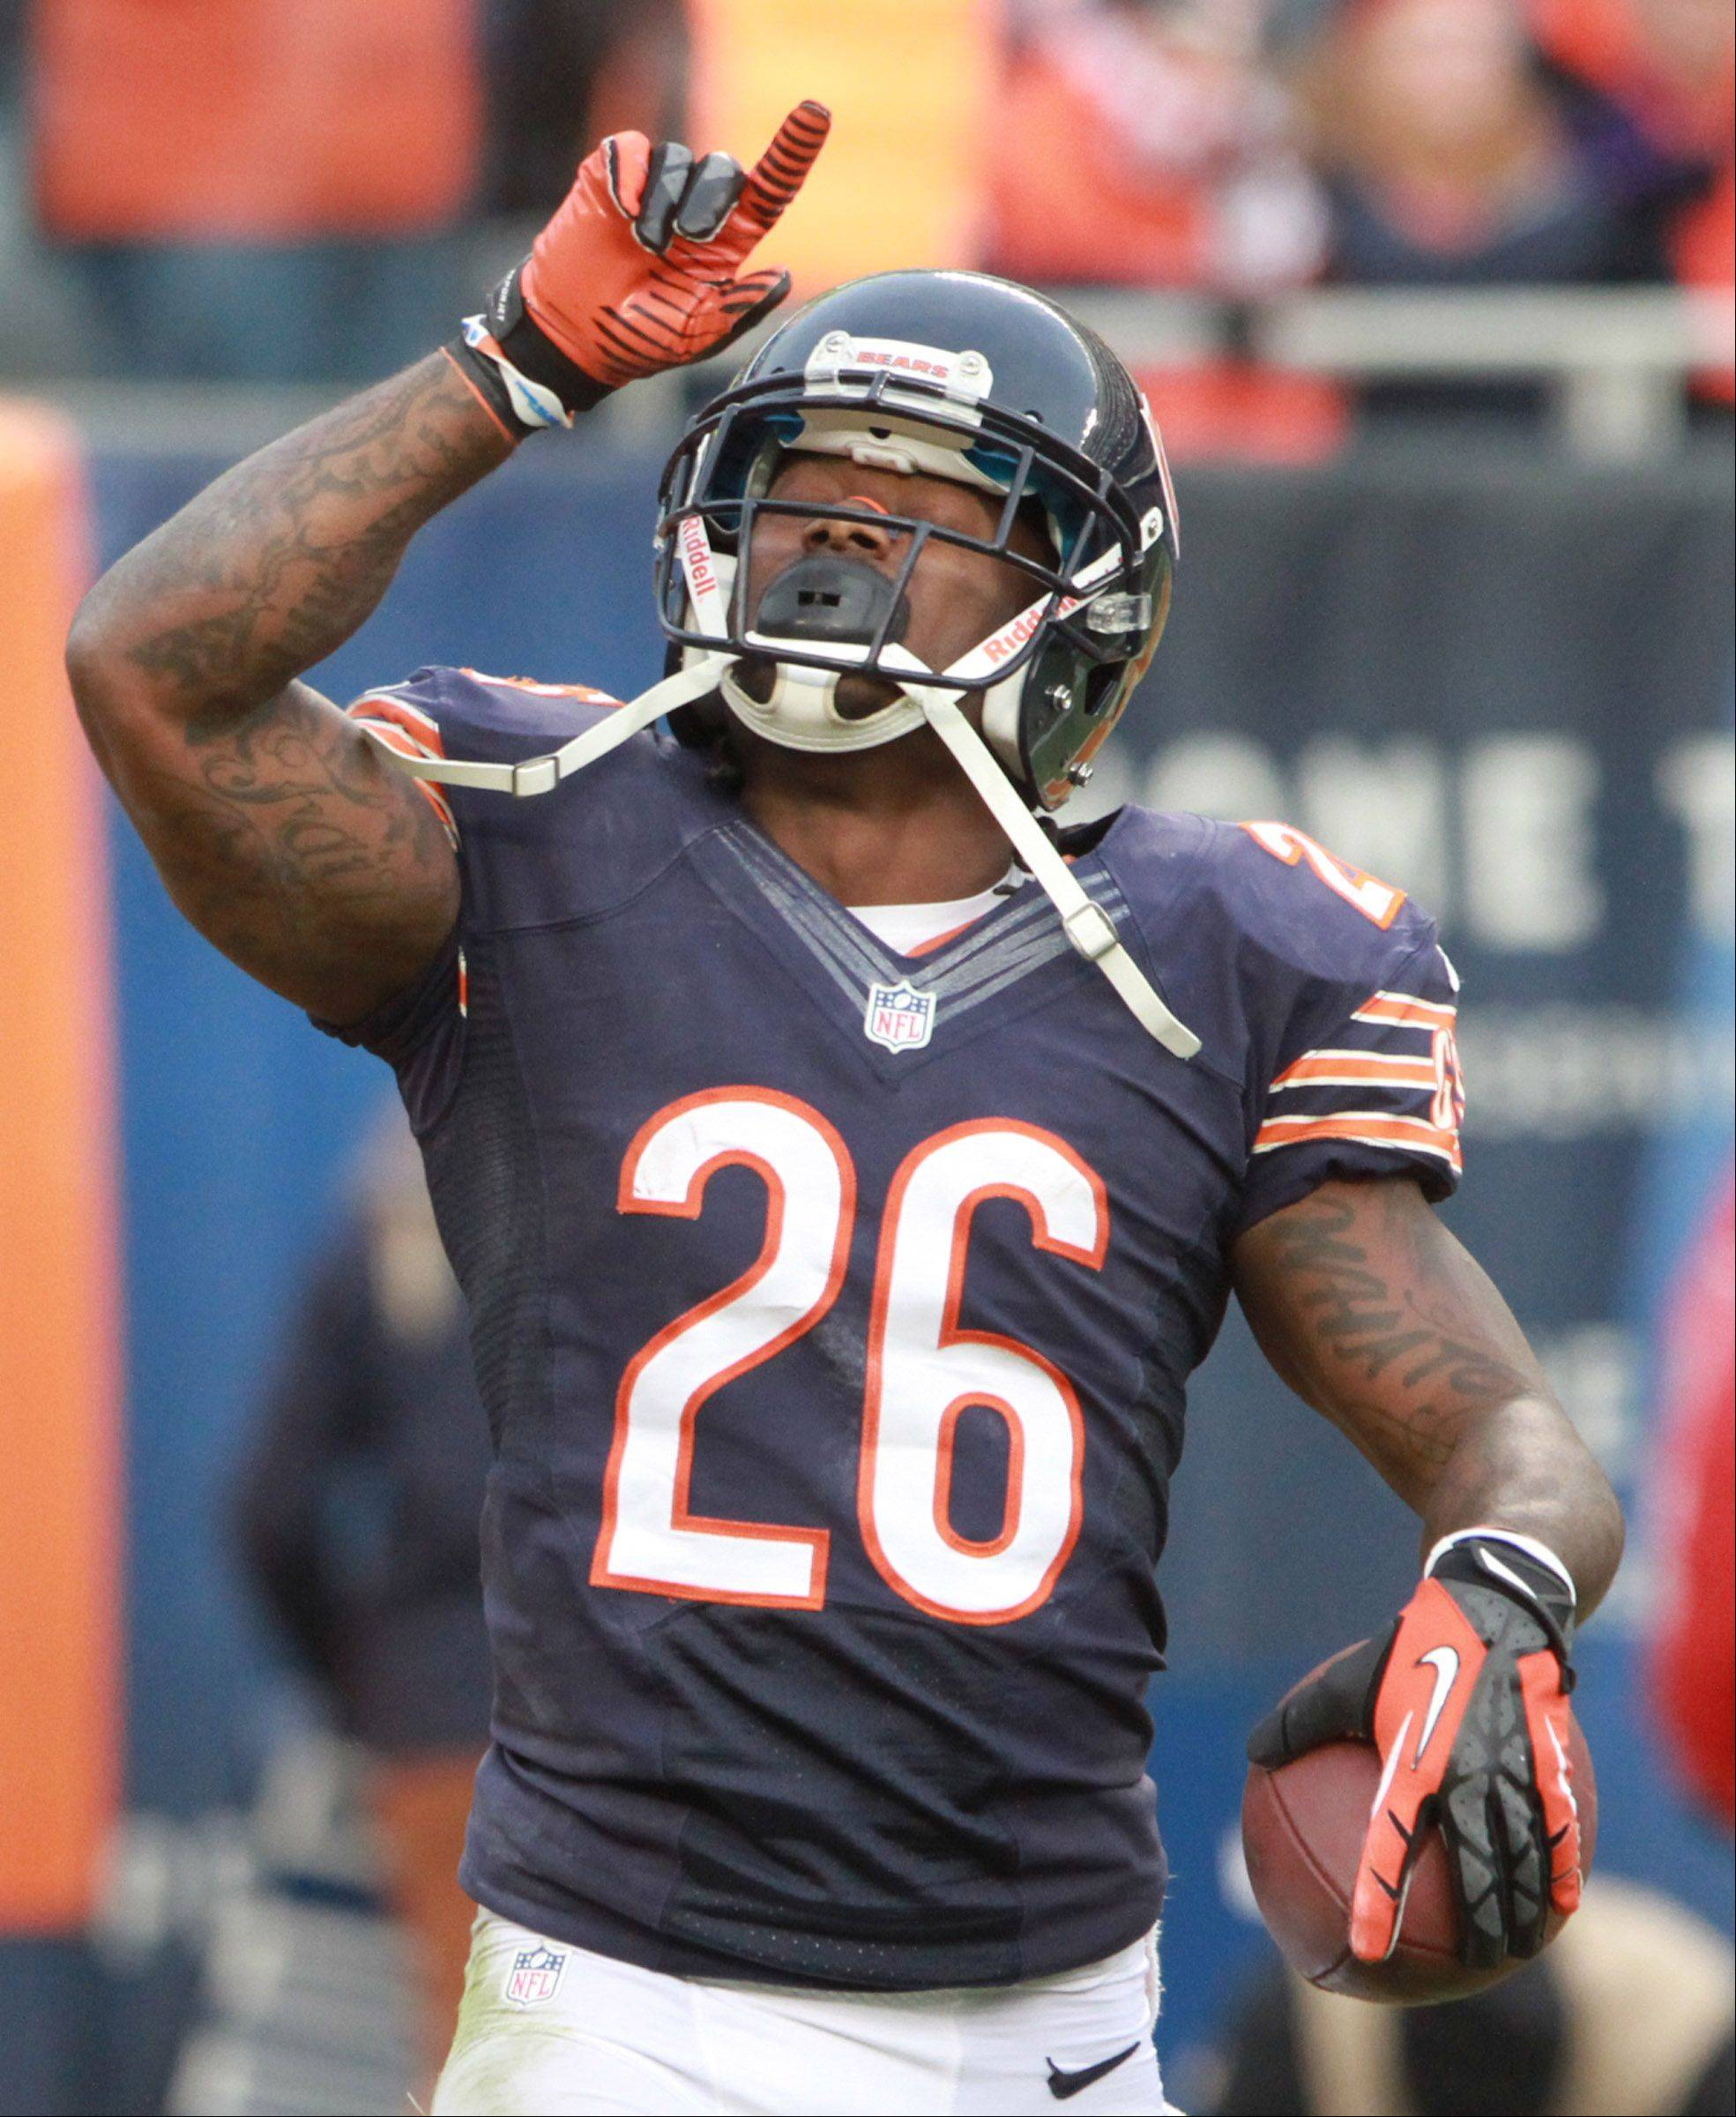 Chicago Bears cornerback Tim Jennings celebrates intercepting a pass by Minnesota Vikings quarterback Christian Ponder.